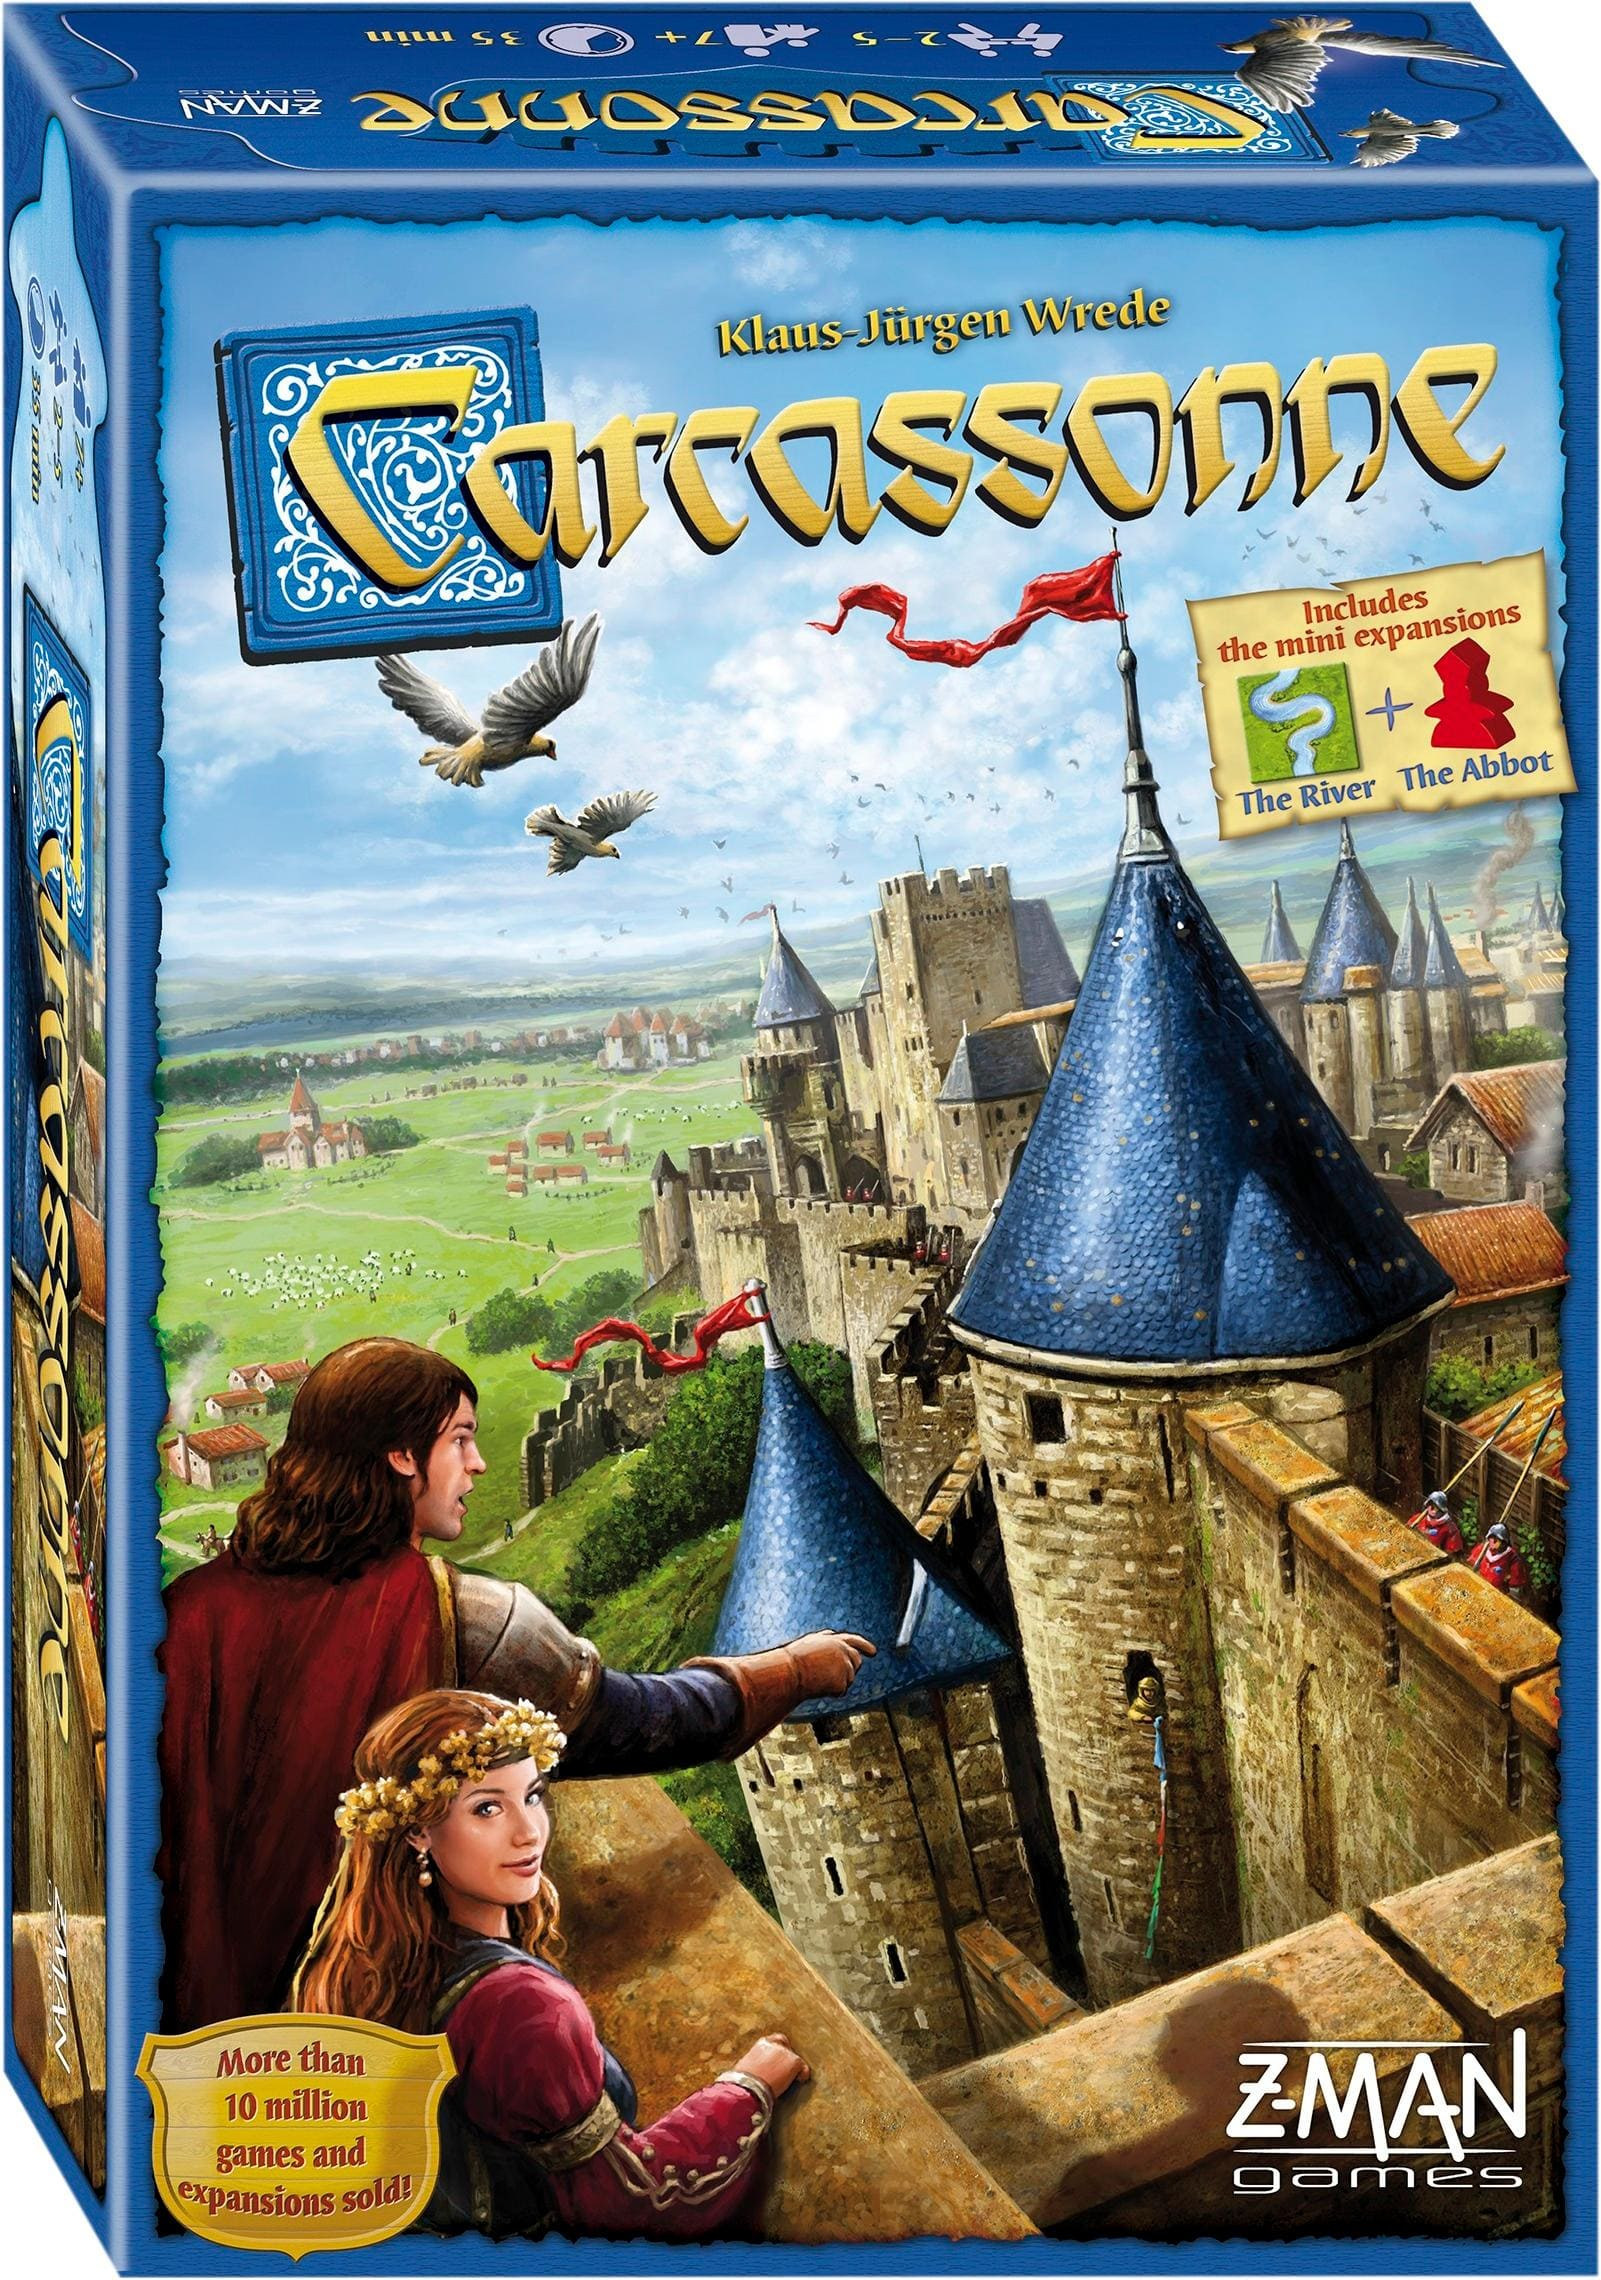 YMMV - Clearance Carcassone 13$ In Store/Online $25